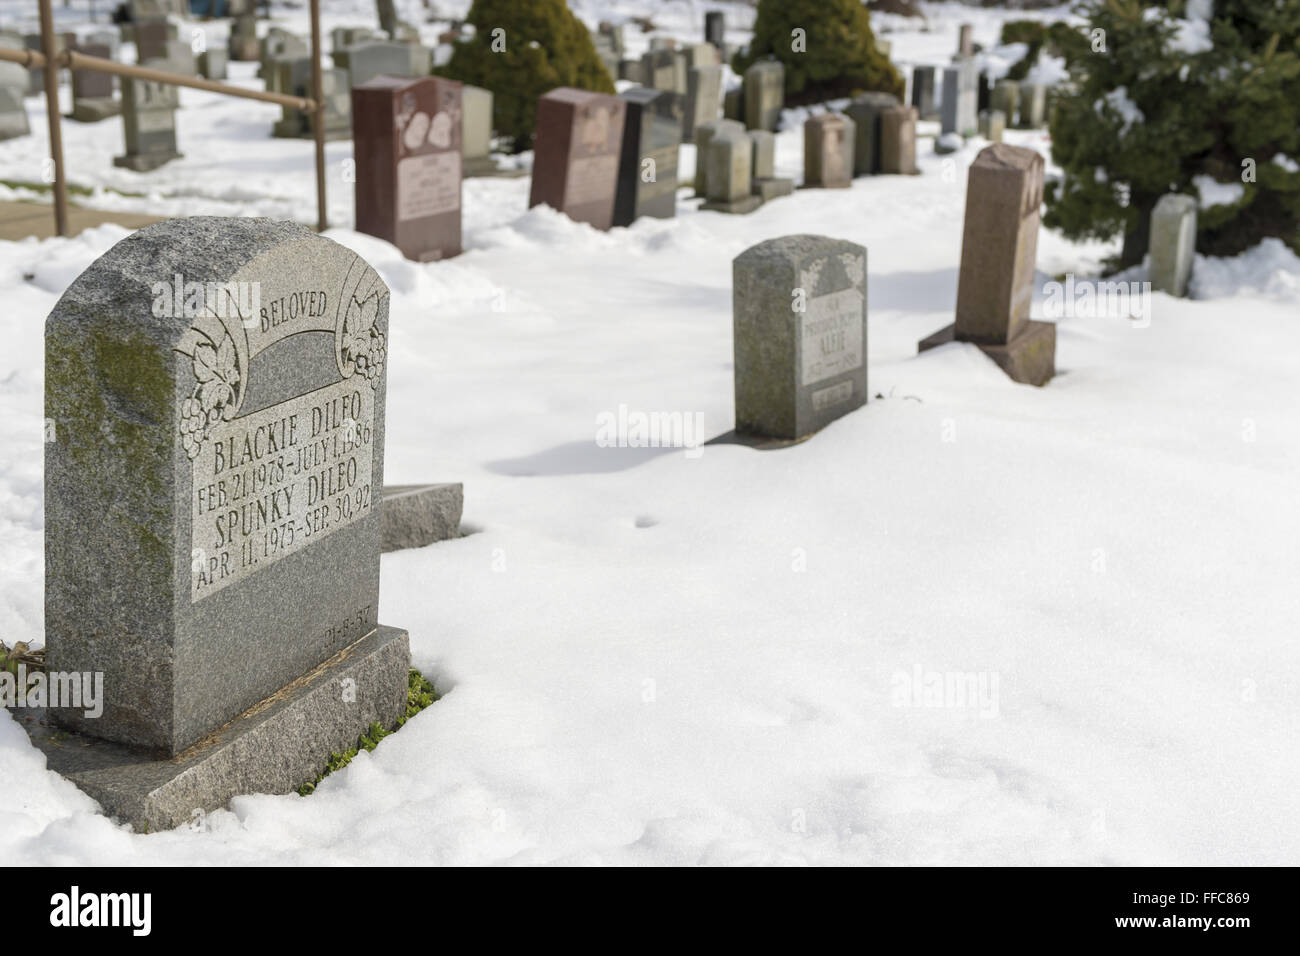 Wantagh, New York, USA. 7th Feb, 2016. President Nixon's famous dog Checkers, the cocker spaniel, is buried - Stock Image